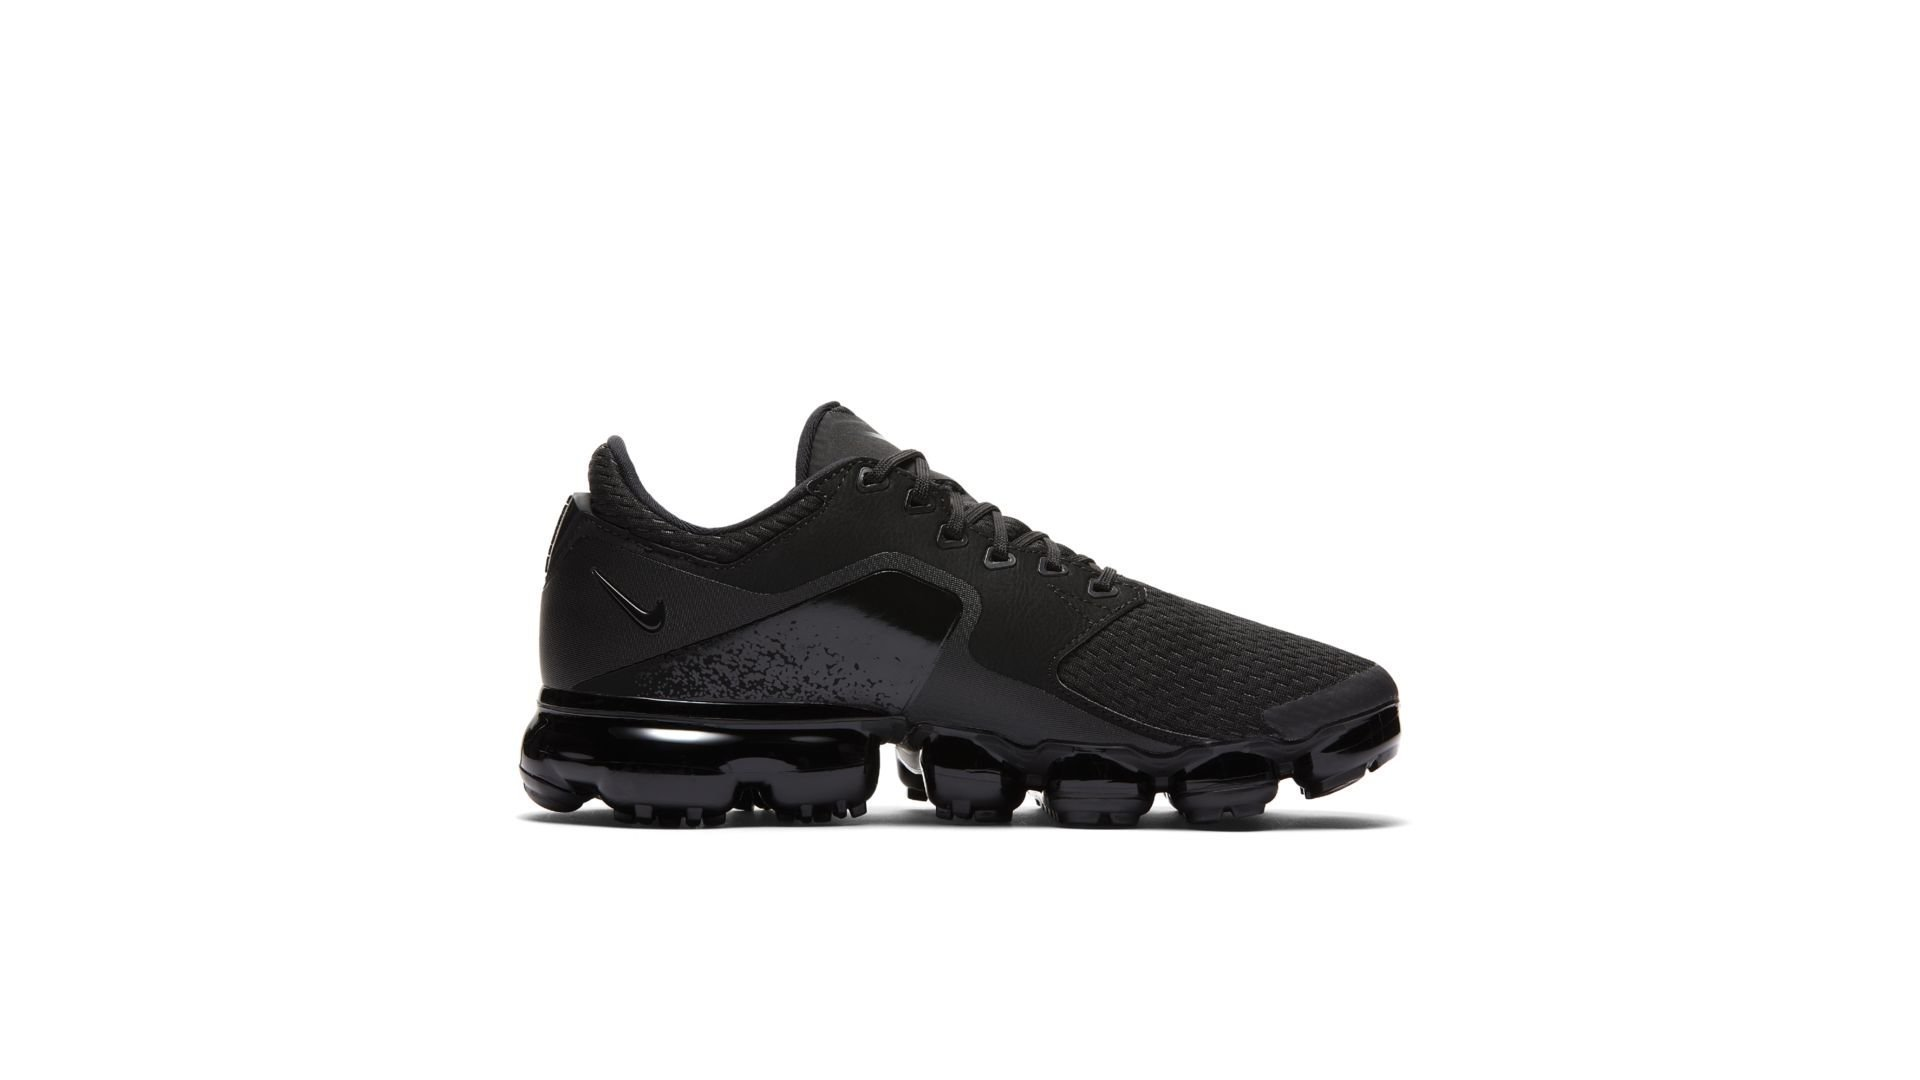 Nike Air Vapormax Flyknit Triple Black 2.0 (AH9045-002)